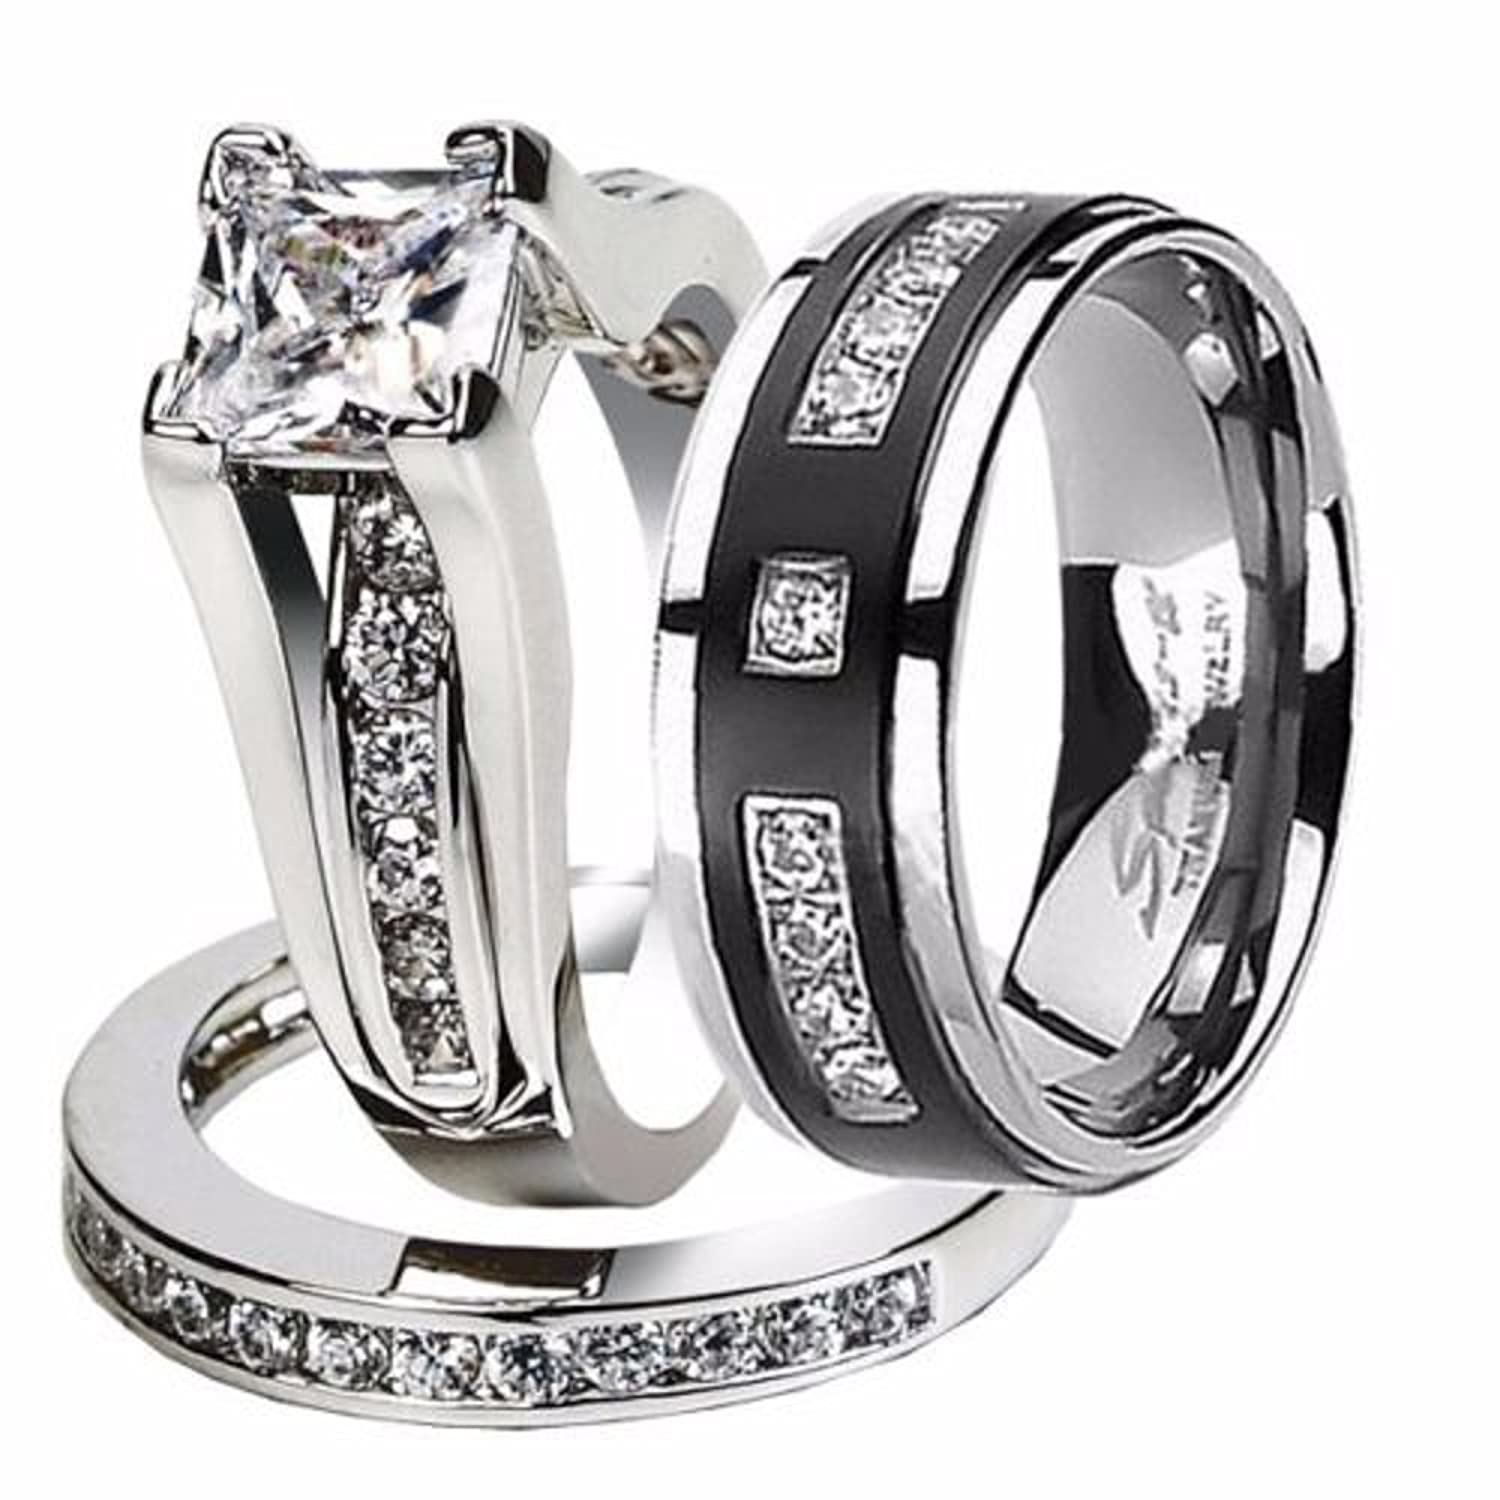 bands facebook jewellery platinum astranova band wedding sets app astranovajewellery